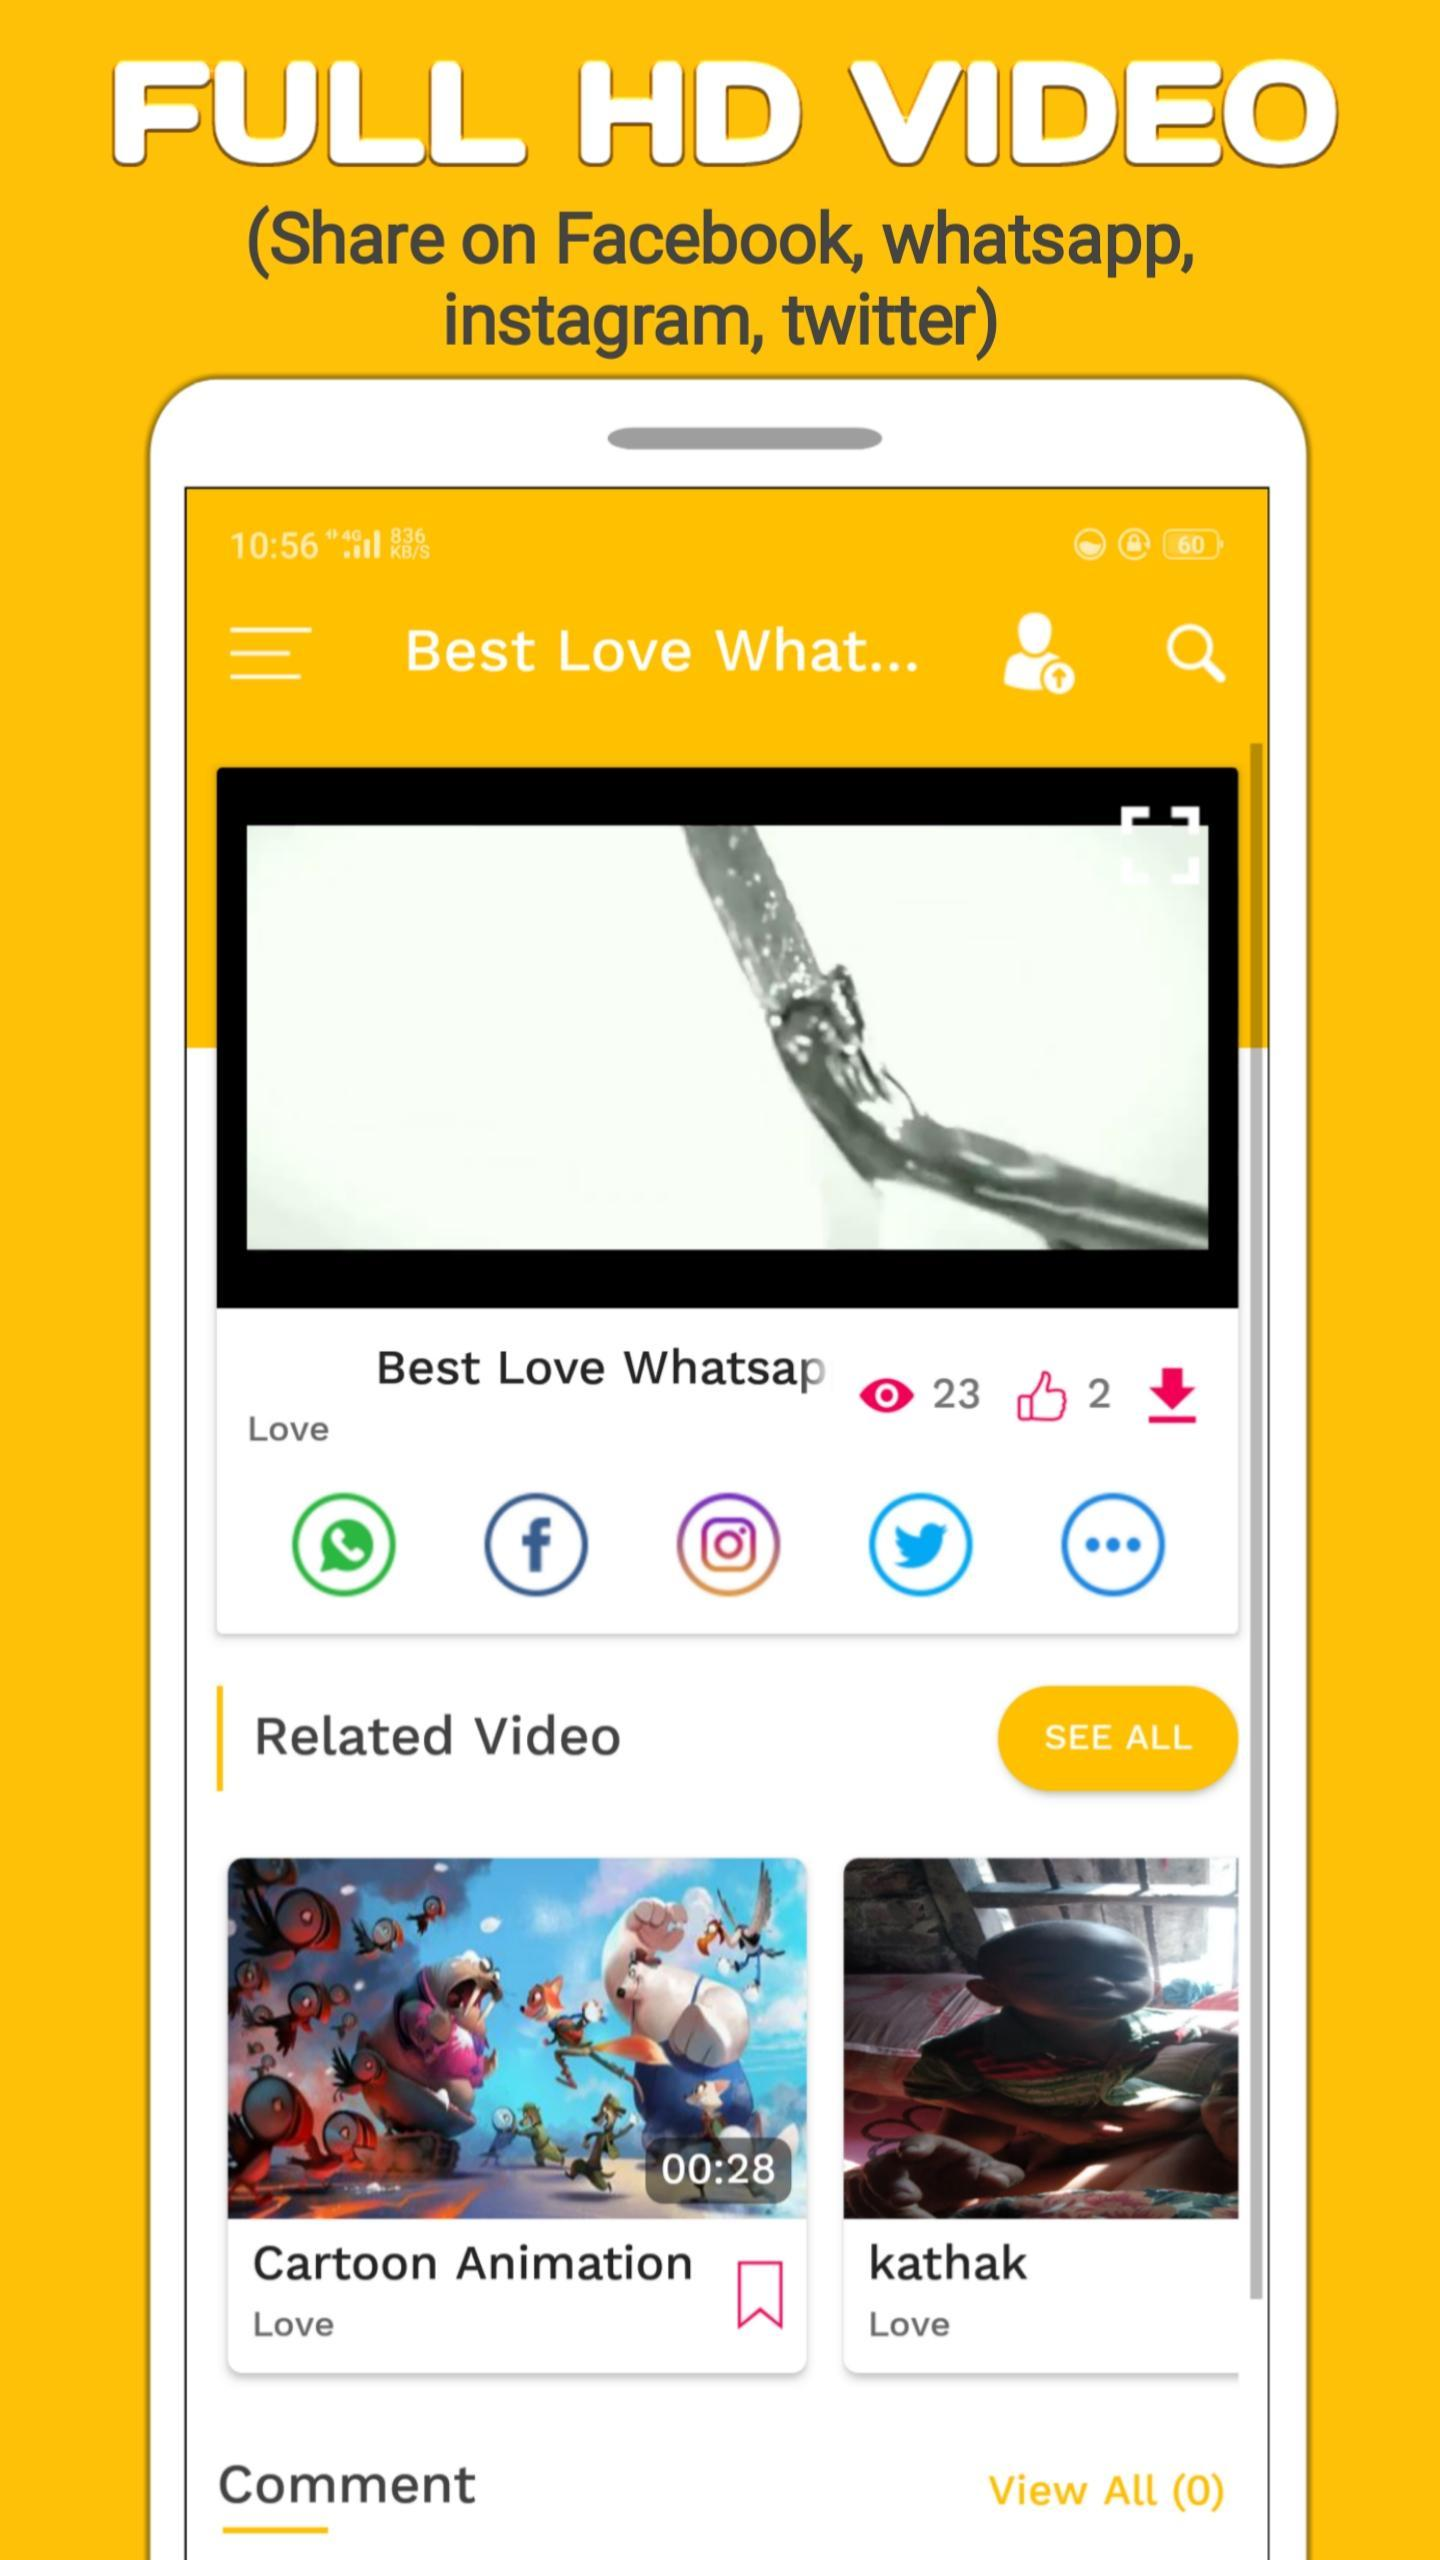 VidEarn- earn paytm cash by watching videos for Android